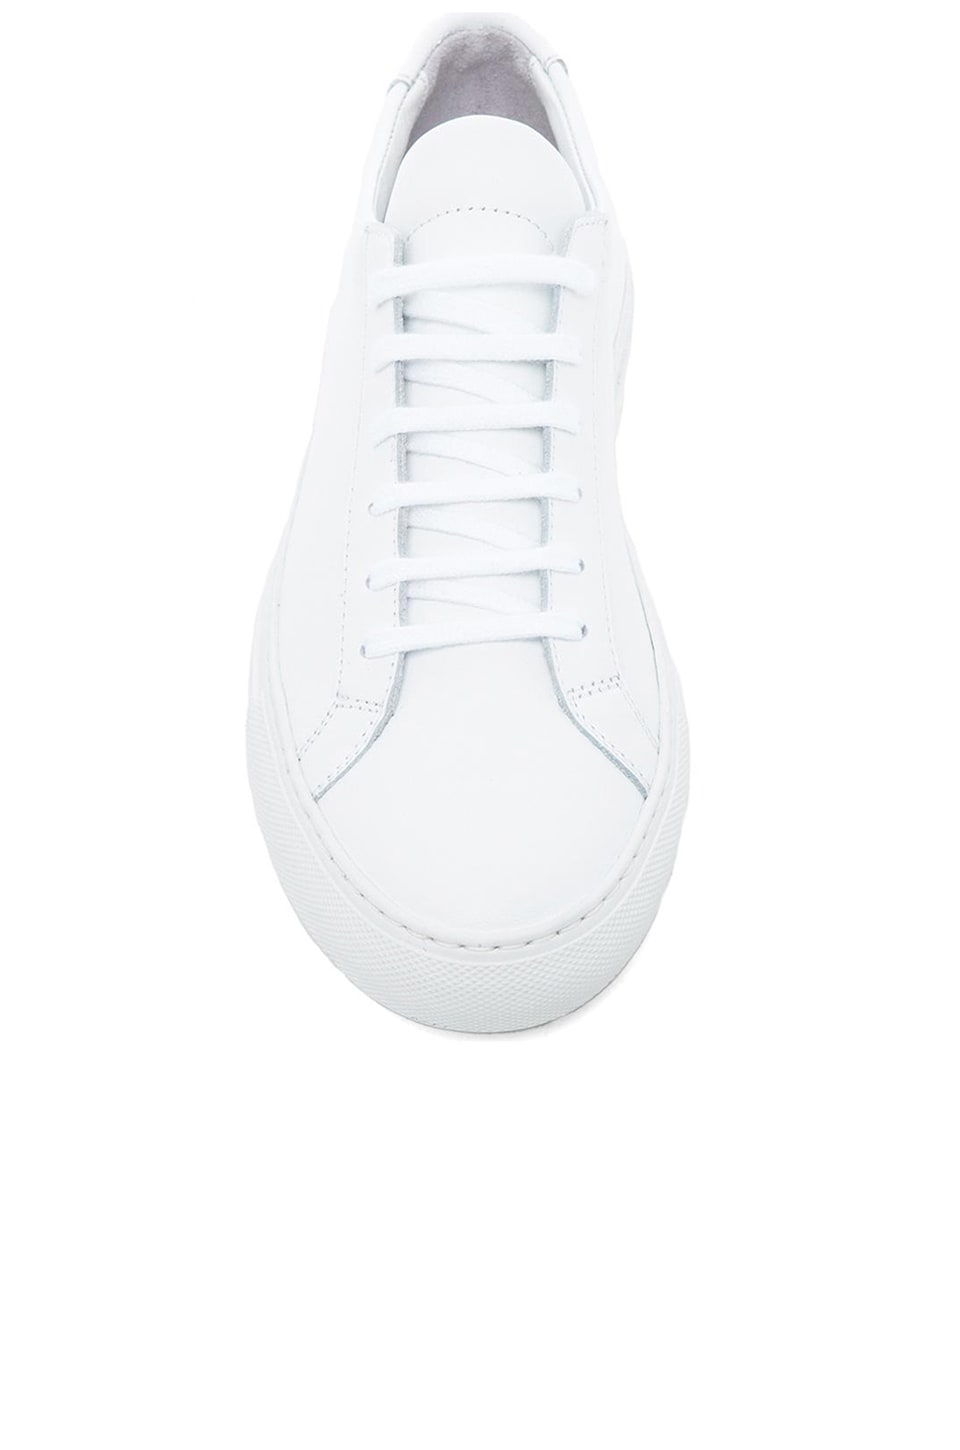 Common Projects Original Achilles Low in White